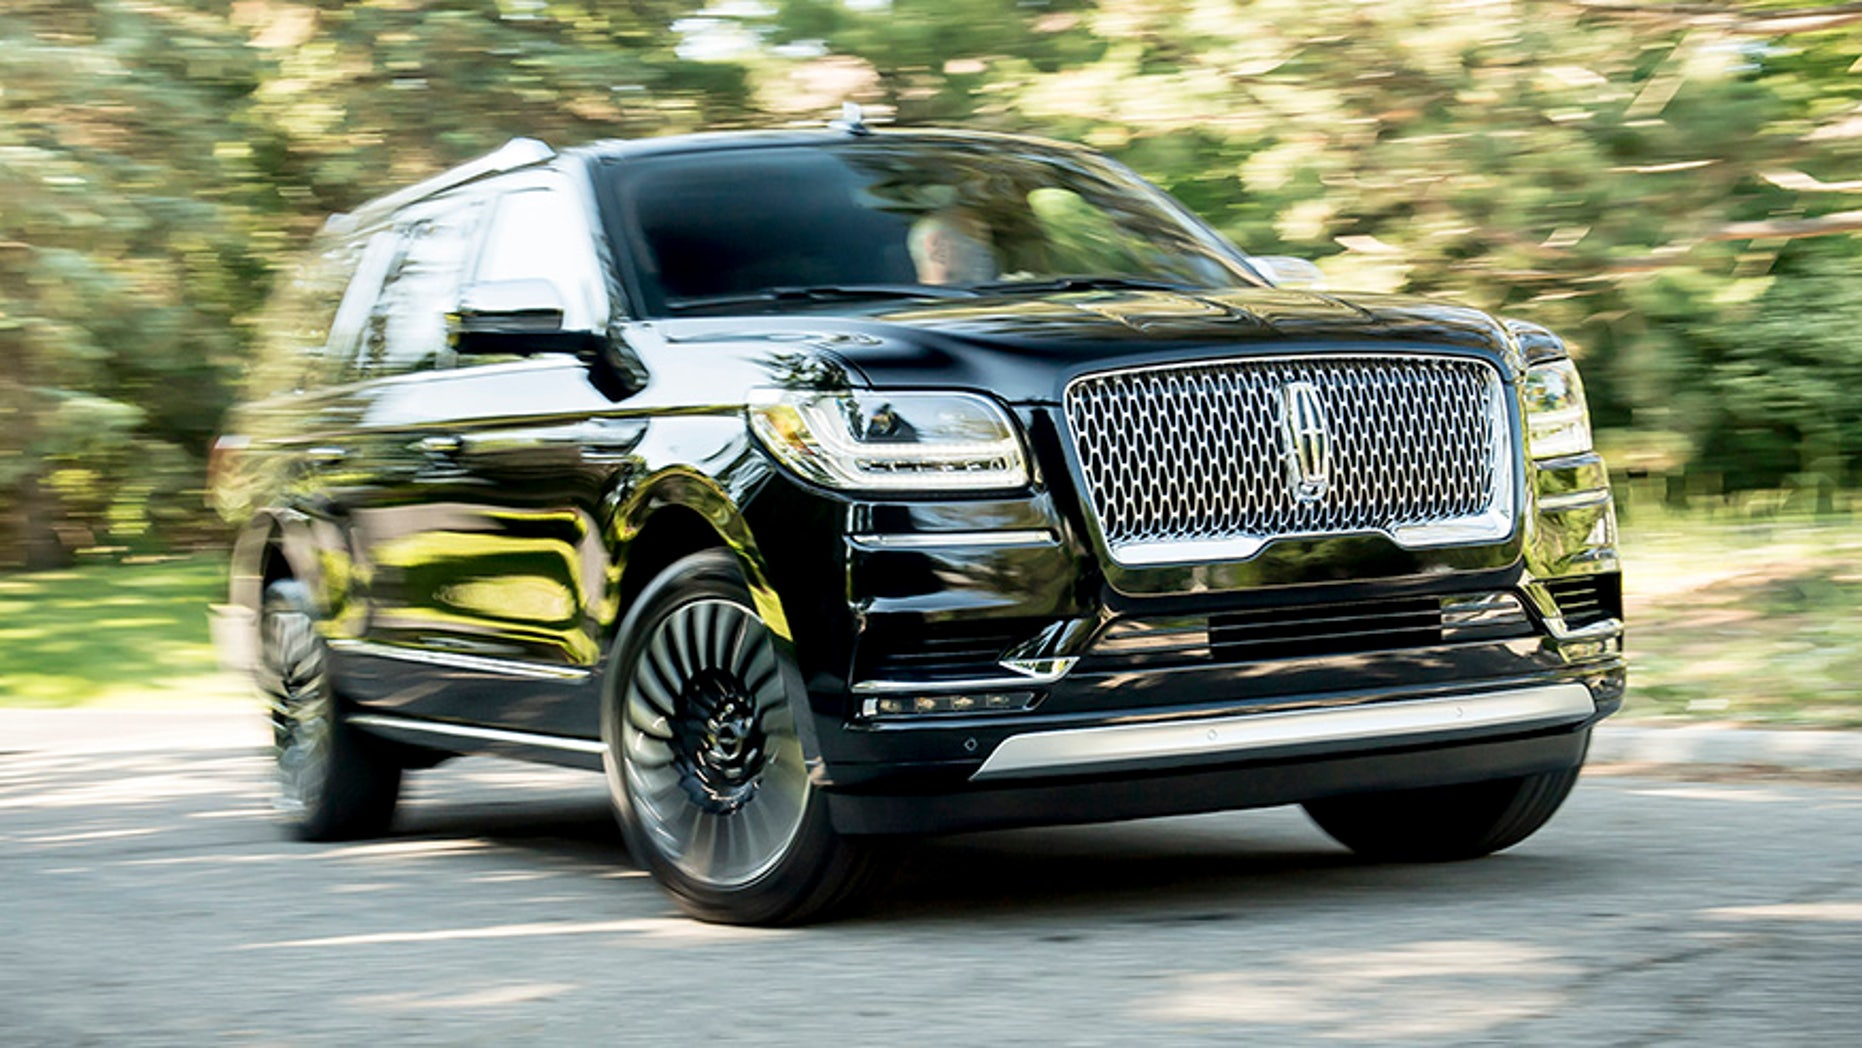 Ford Expedition and Lincoln Navigator full-size hybrid SUVs coming in 2019, report says | Fox News